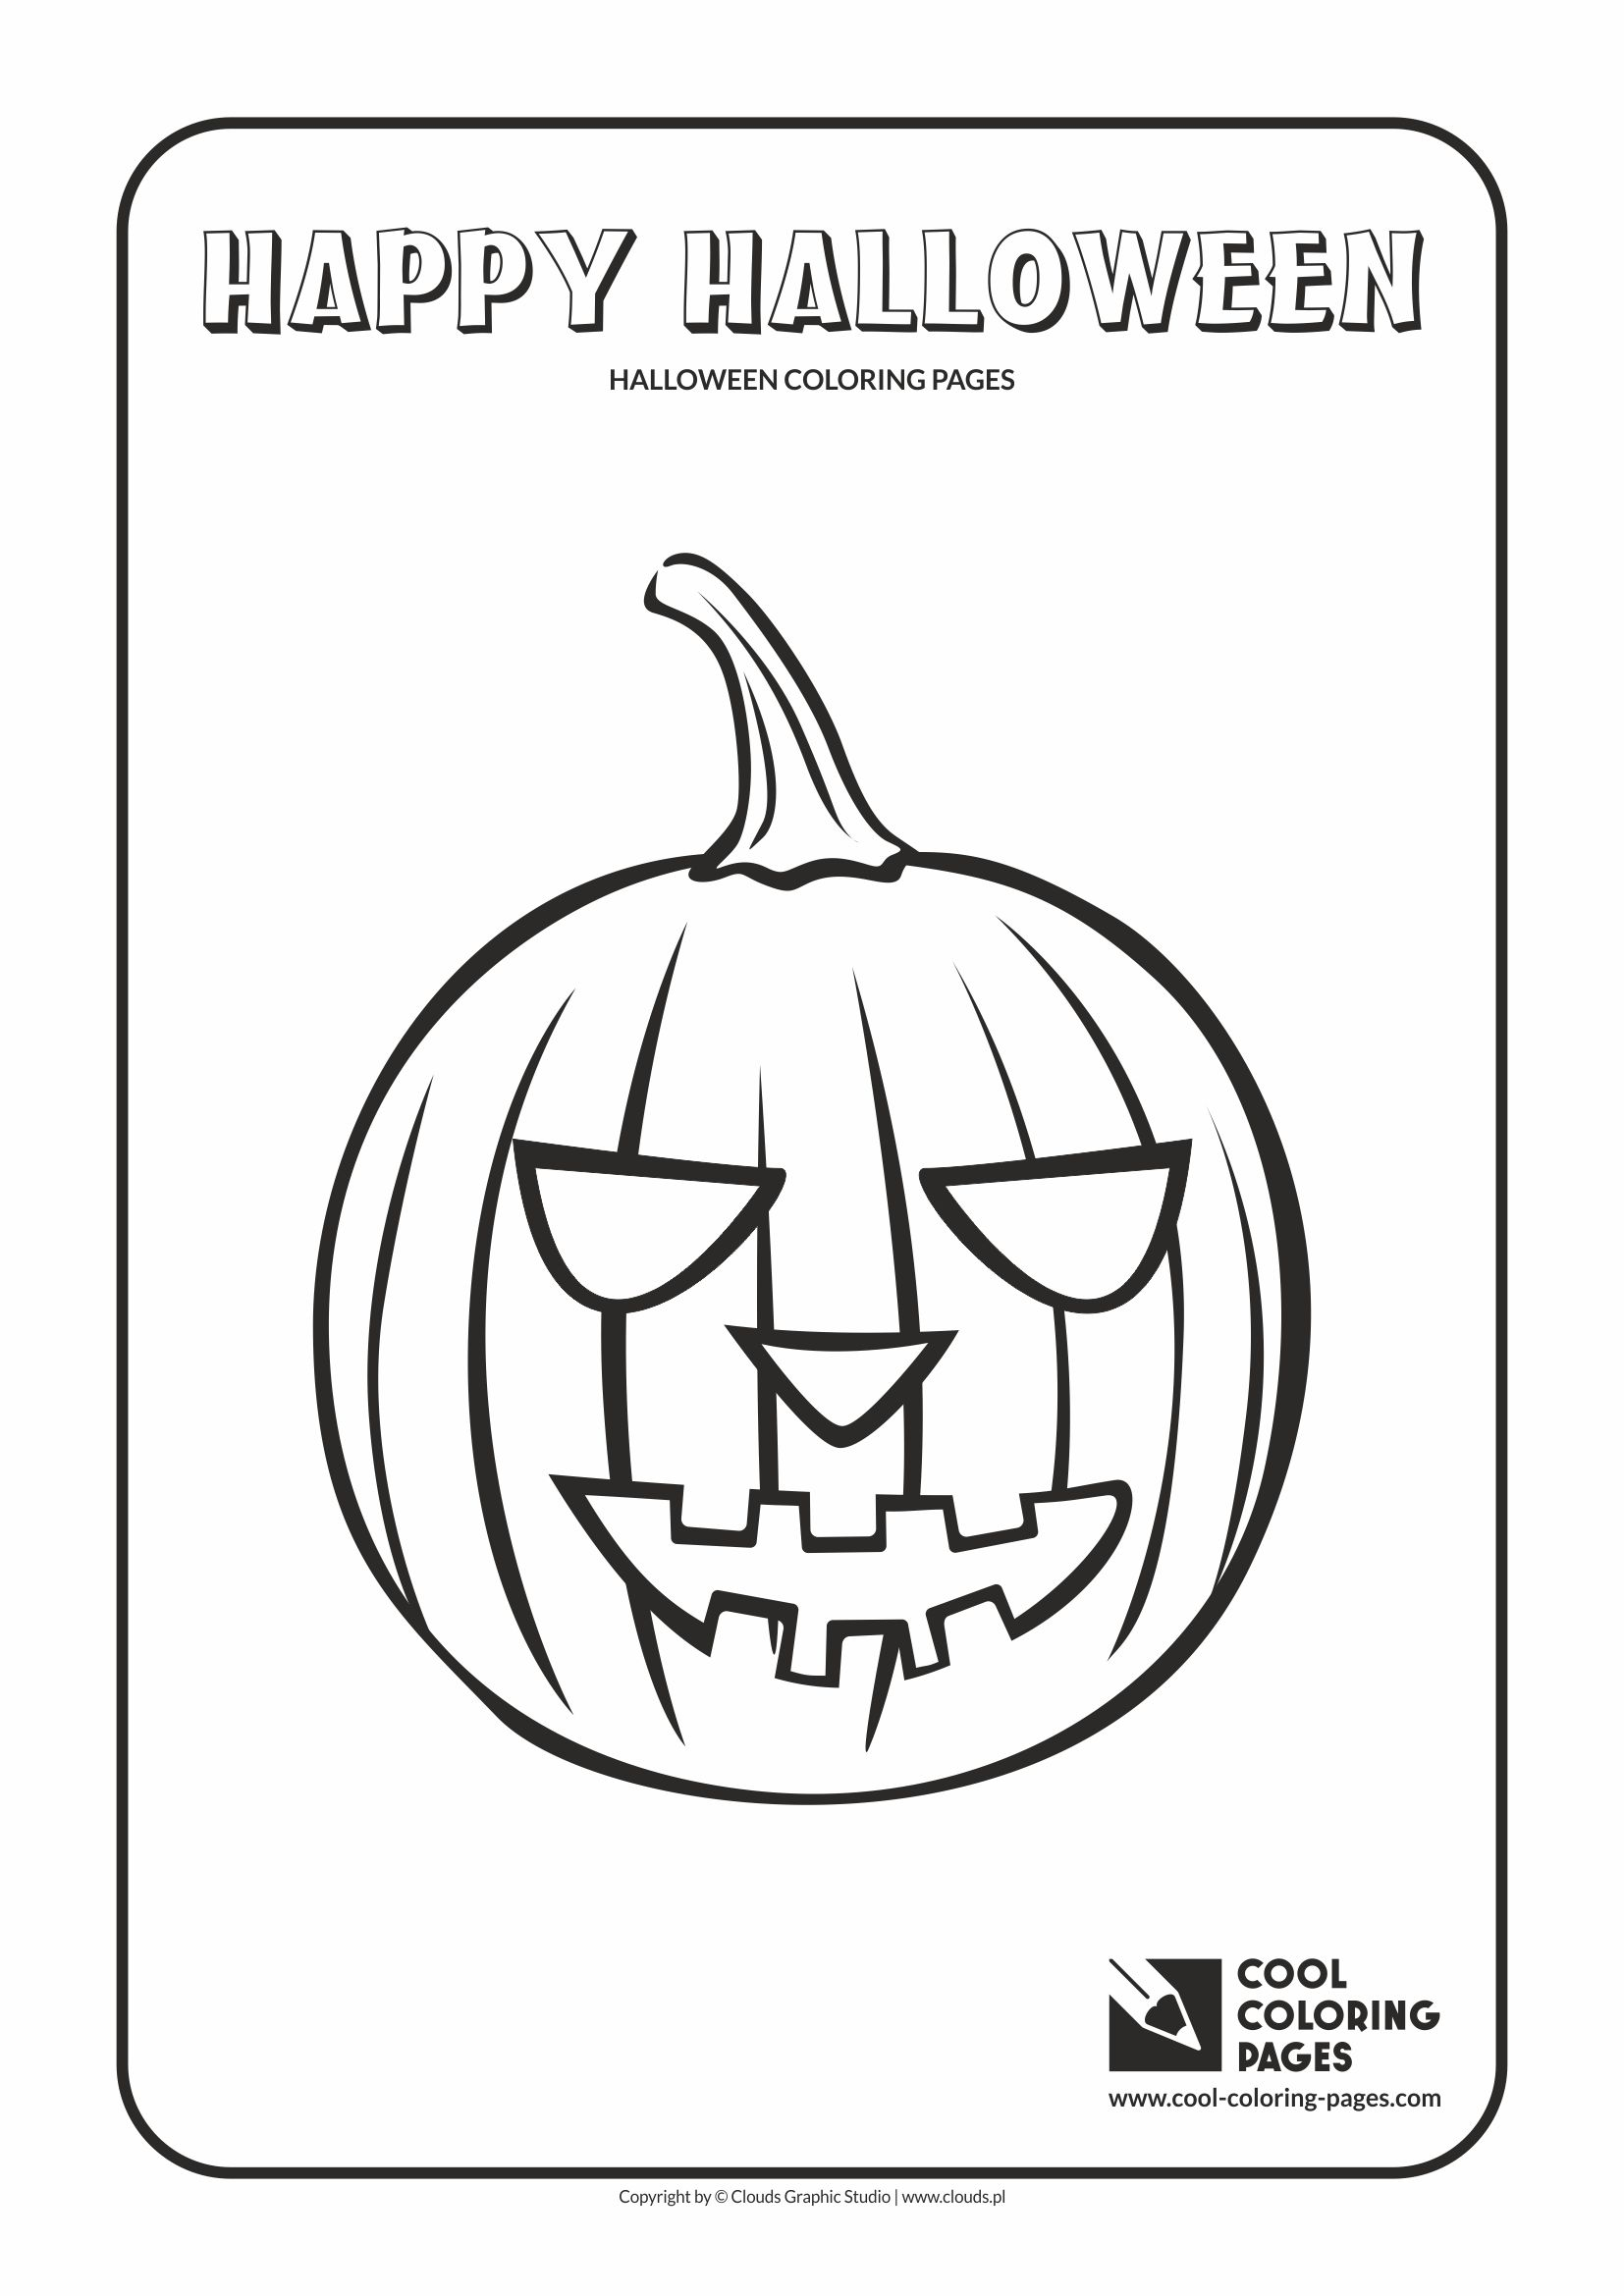 Cool Coloring Pages Halloween coloring pages - Cool Coloring Pages ...